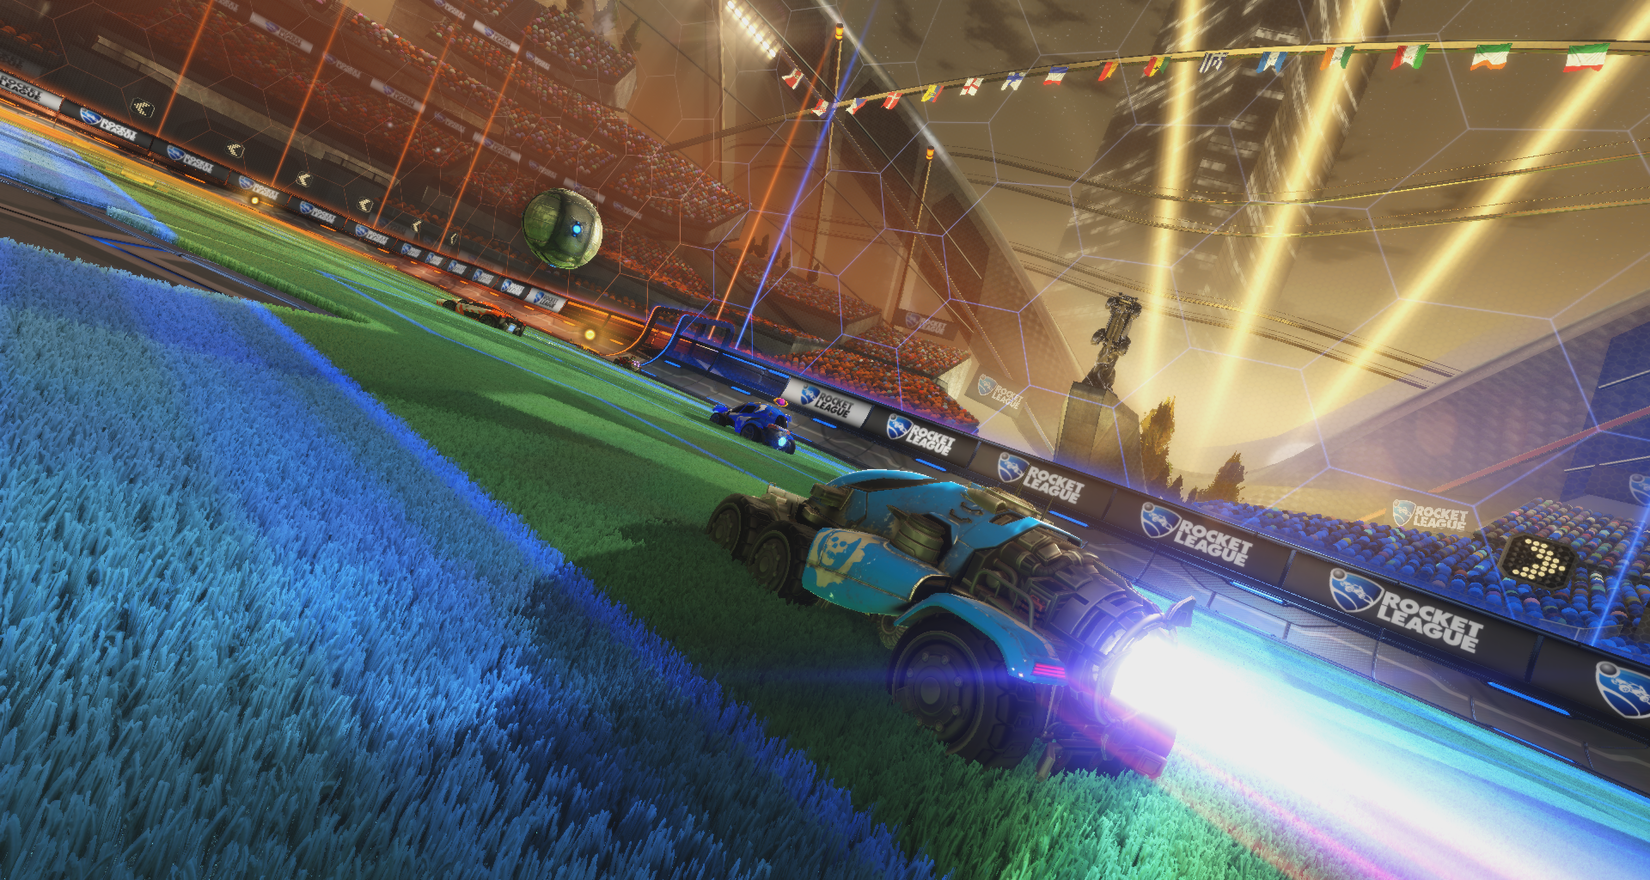 rocket league free on xbox one for gold members throughout. Black Bedroom Furniture Sets. Home Design Ideas